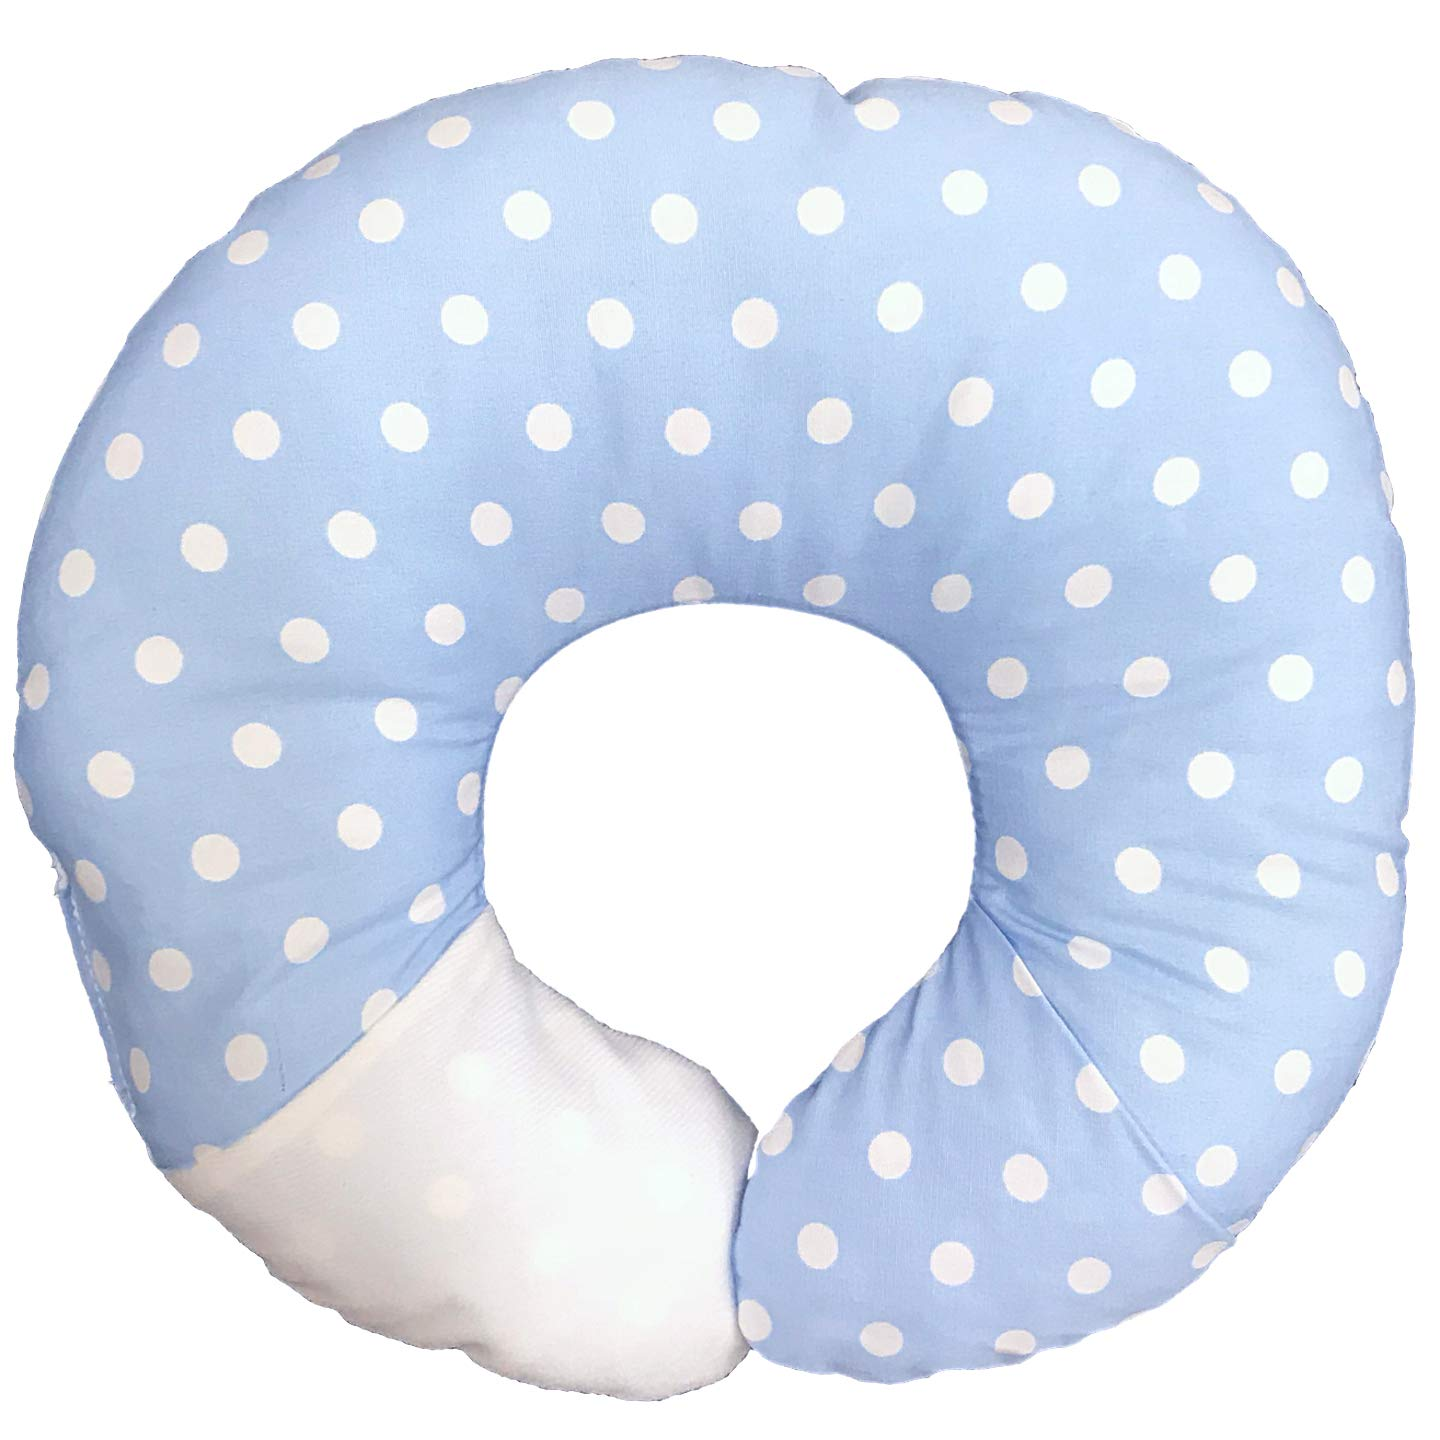 BabyMoon Pillow - For Head Support & Neck Support (Baby Blue) BM2000